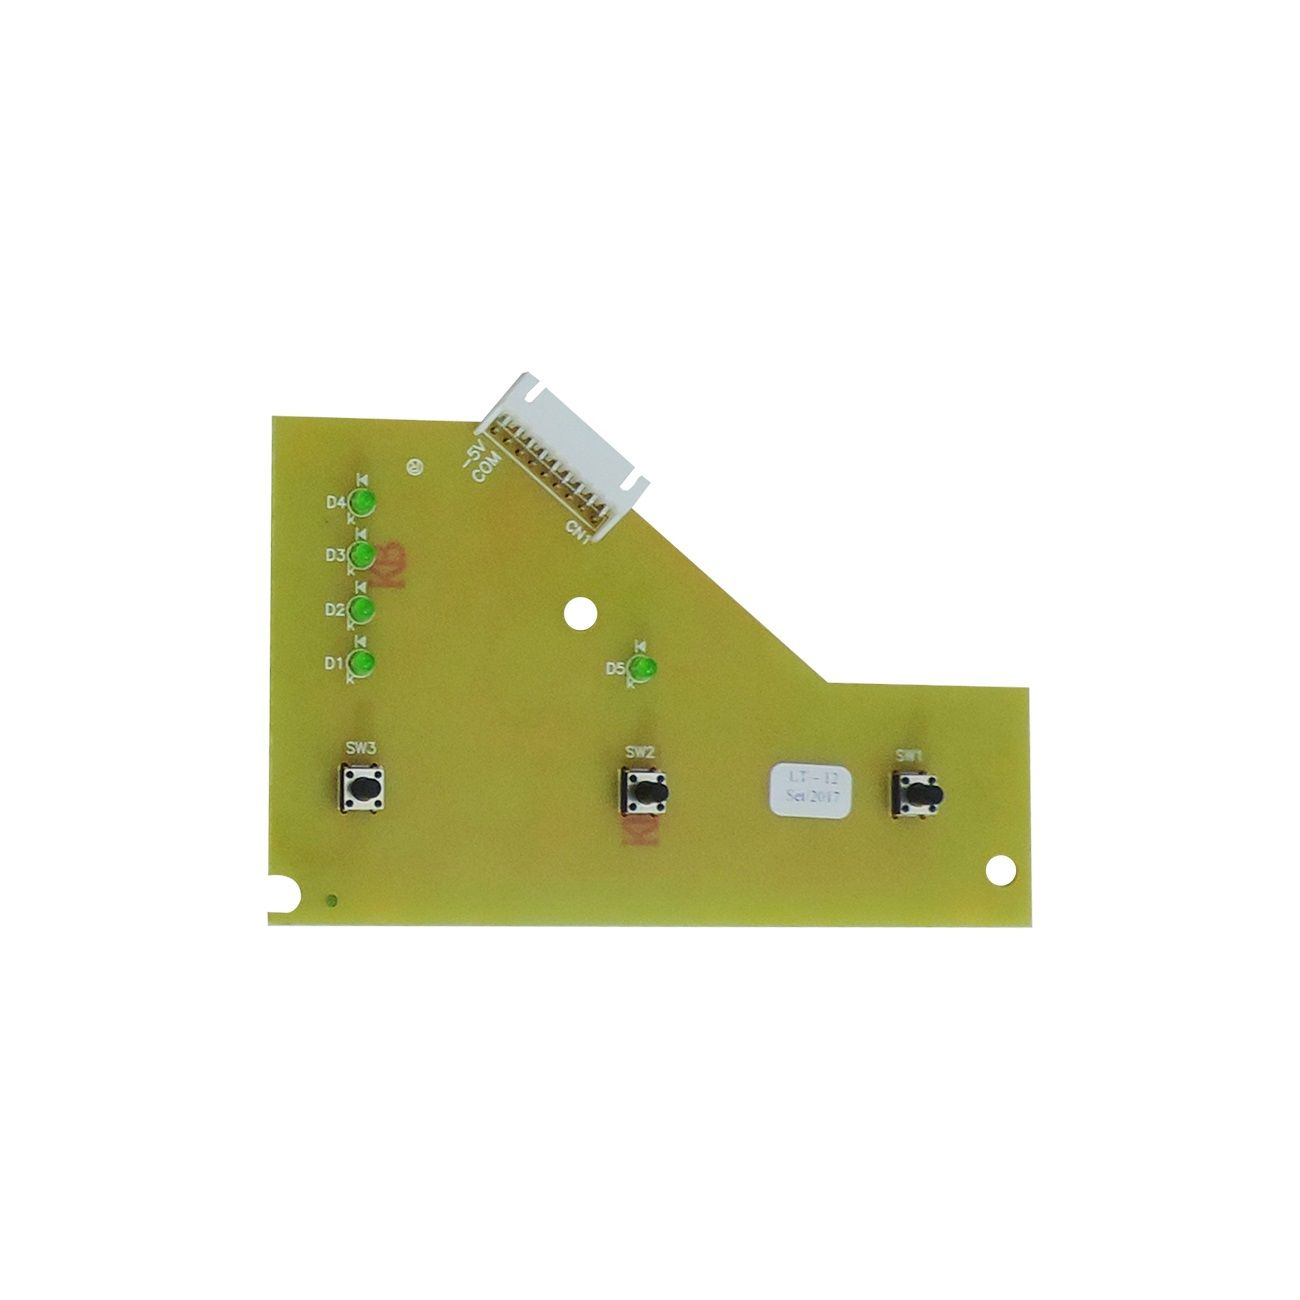 Placa Interface Compatível Lavadora Electrolux Lte12 64800634 CDI